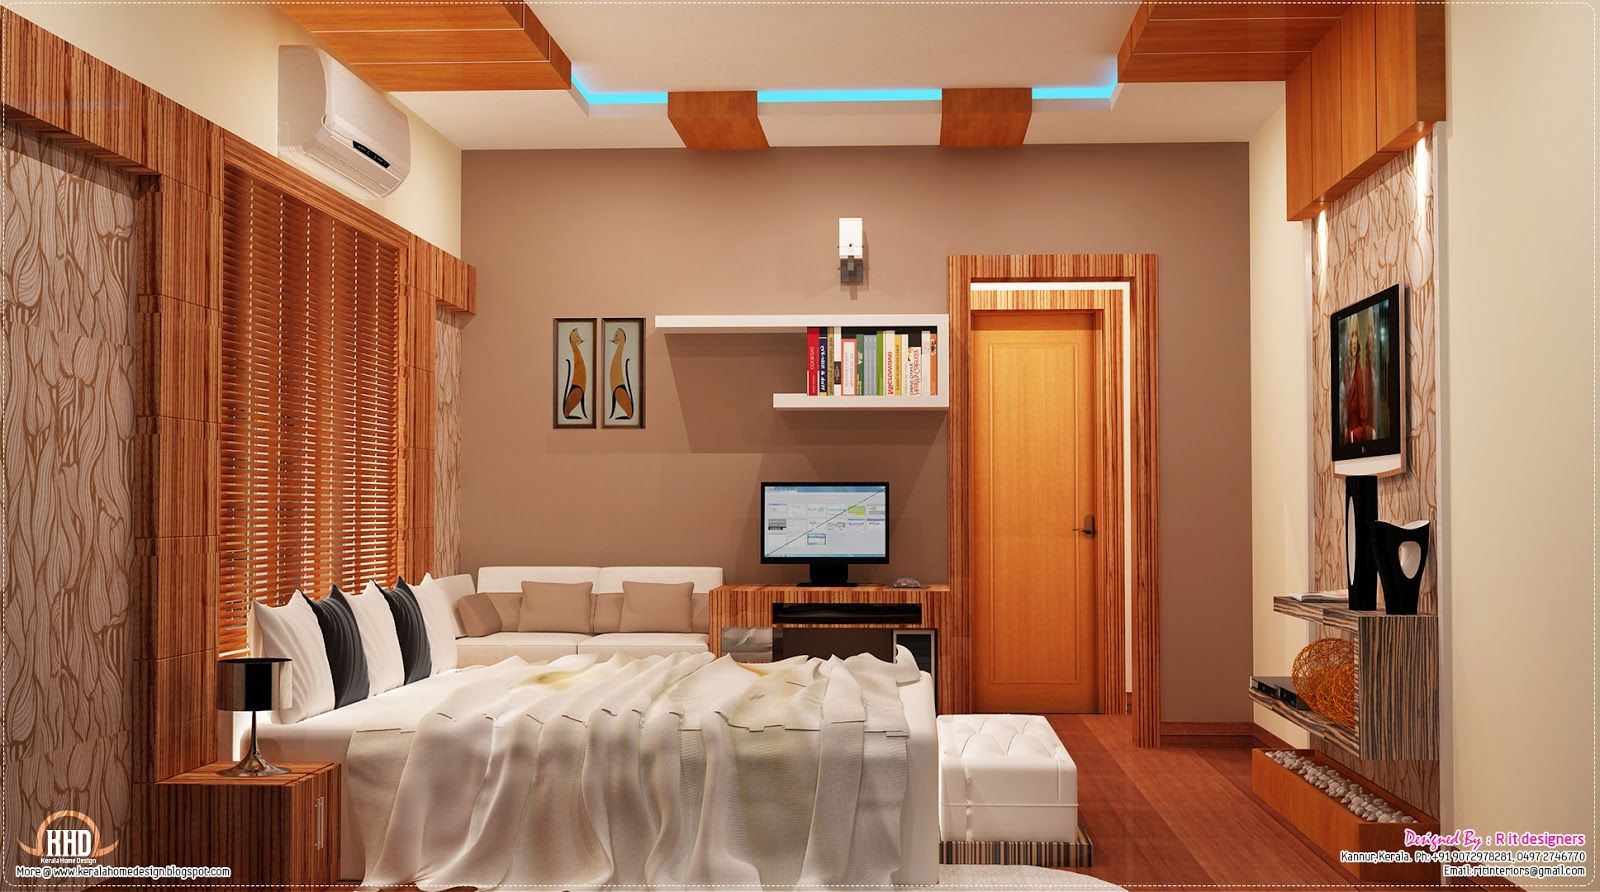 Interior Designs Kerala Houses Smart House Ideas